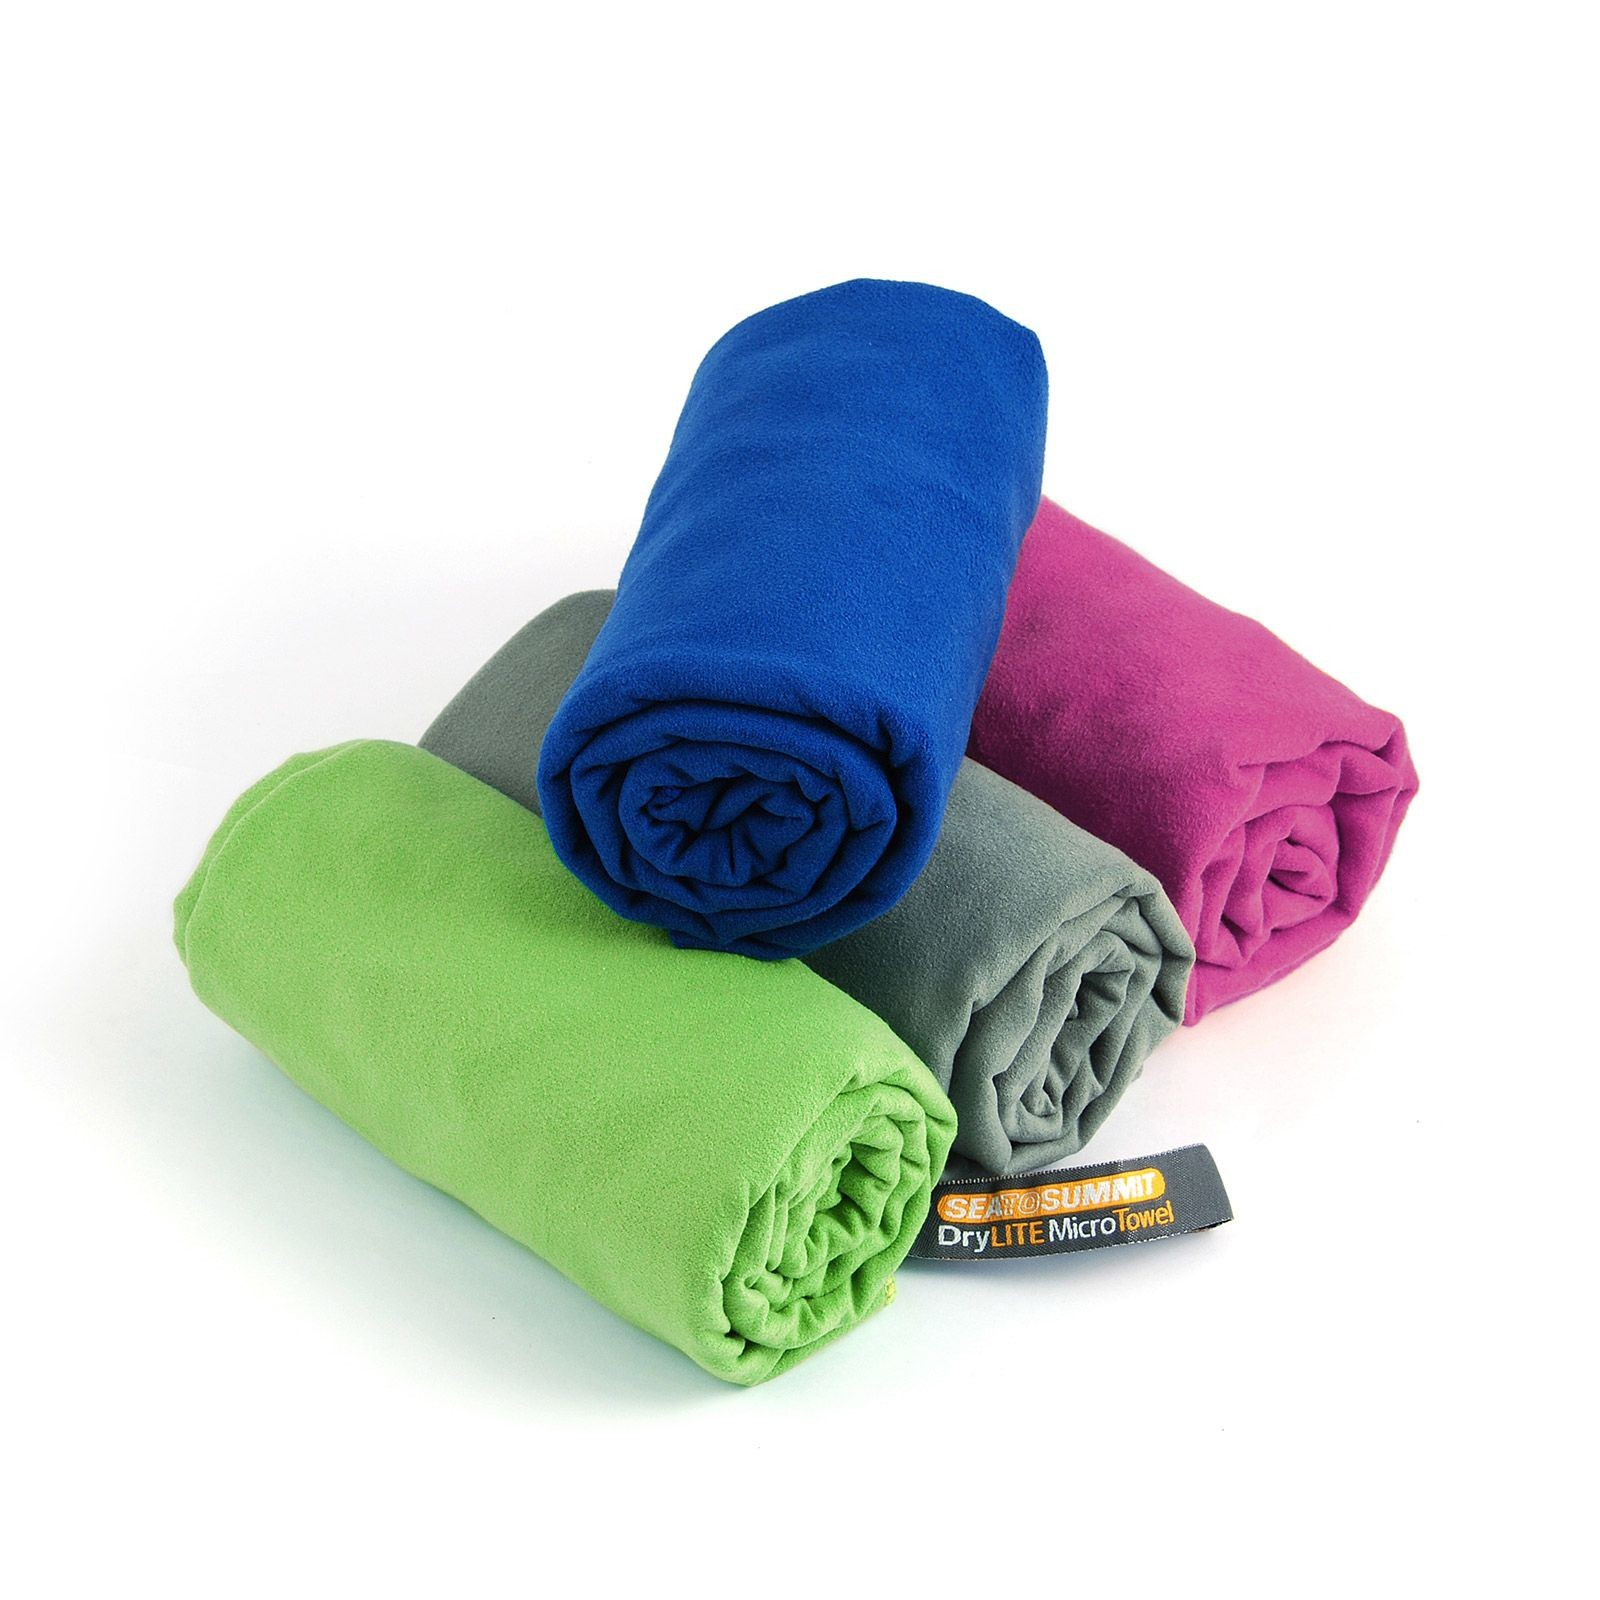 Sea To Summit Drylite Towel X-Large with Antibacterial Treatment 75cm x 150 cm